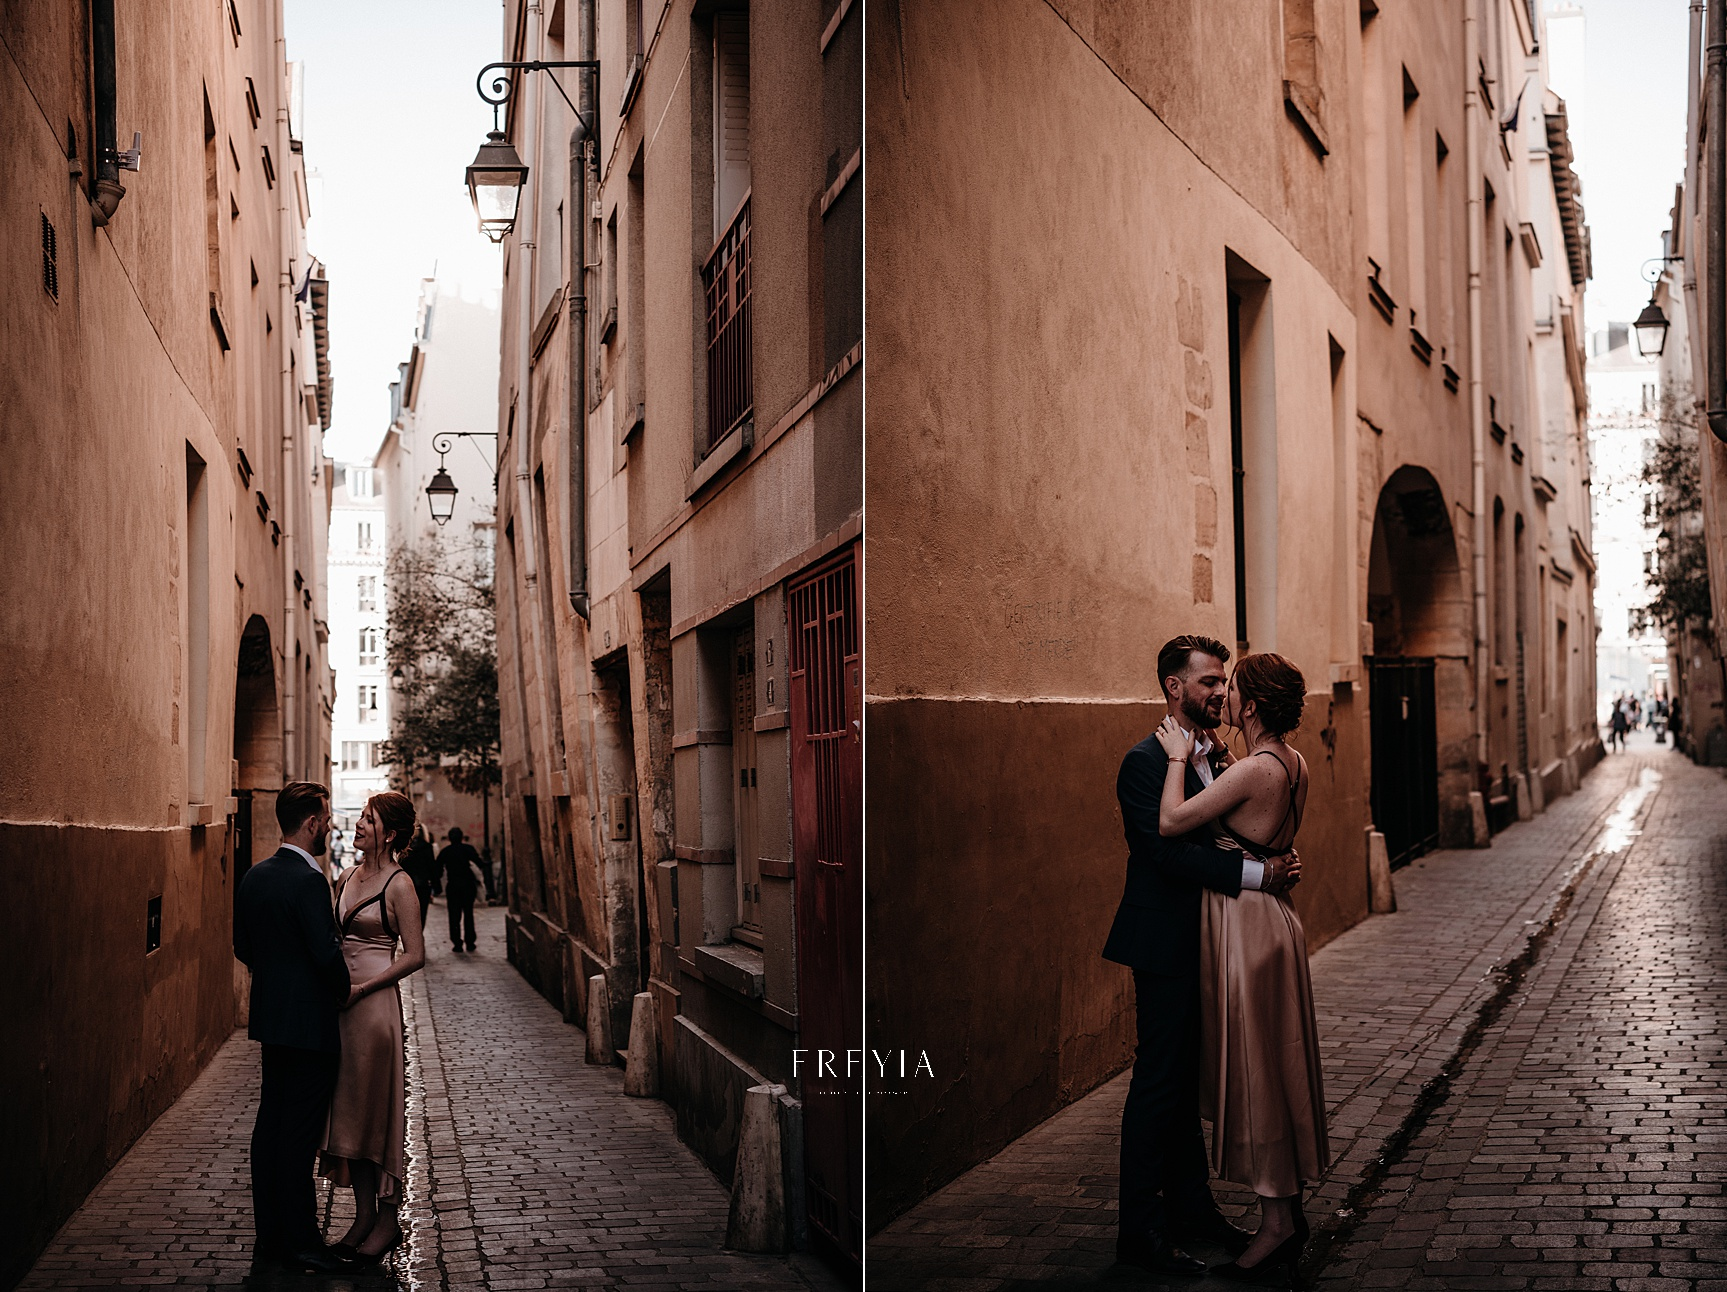 P + F |  mariage reportage alternatif moody intime vintage naturel boho boheme |  PHOTOGRAPHE mariage PARIS france destination  | FREYIA photography_-229.jpg